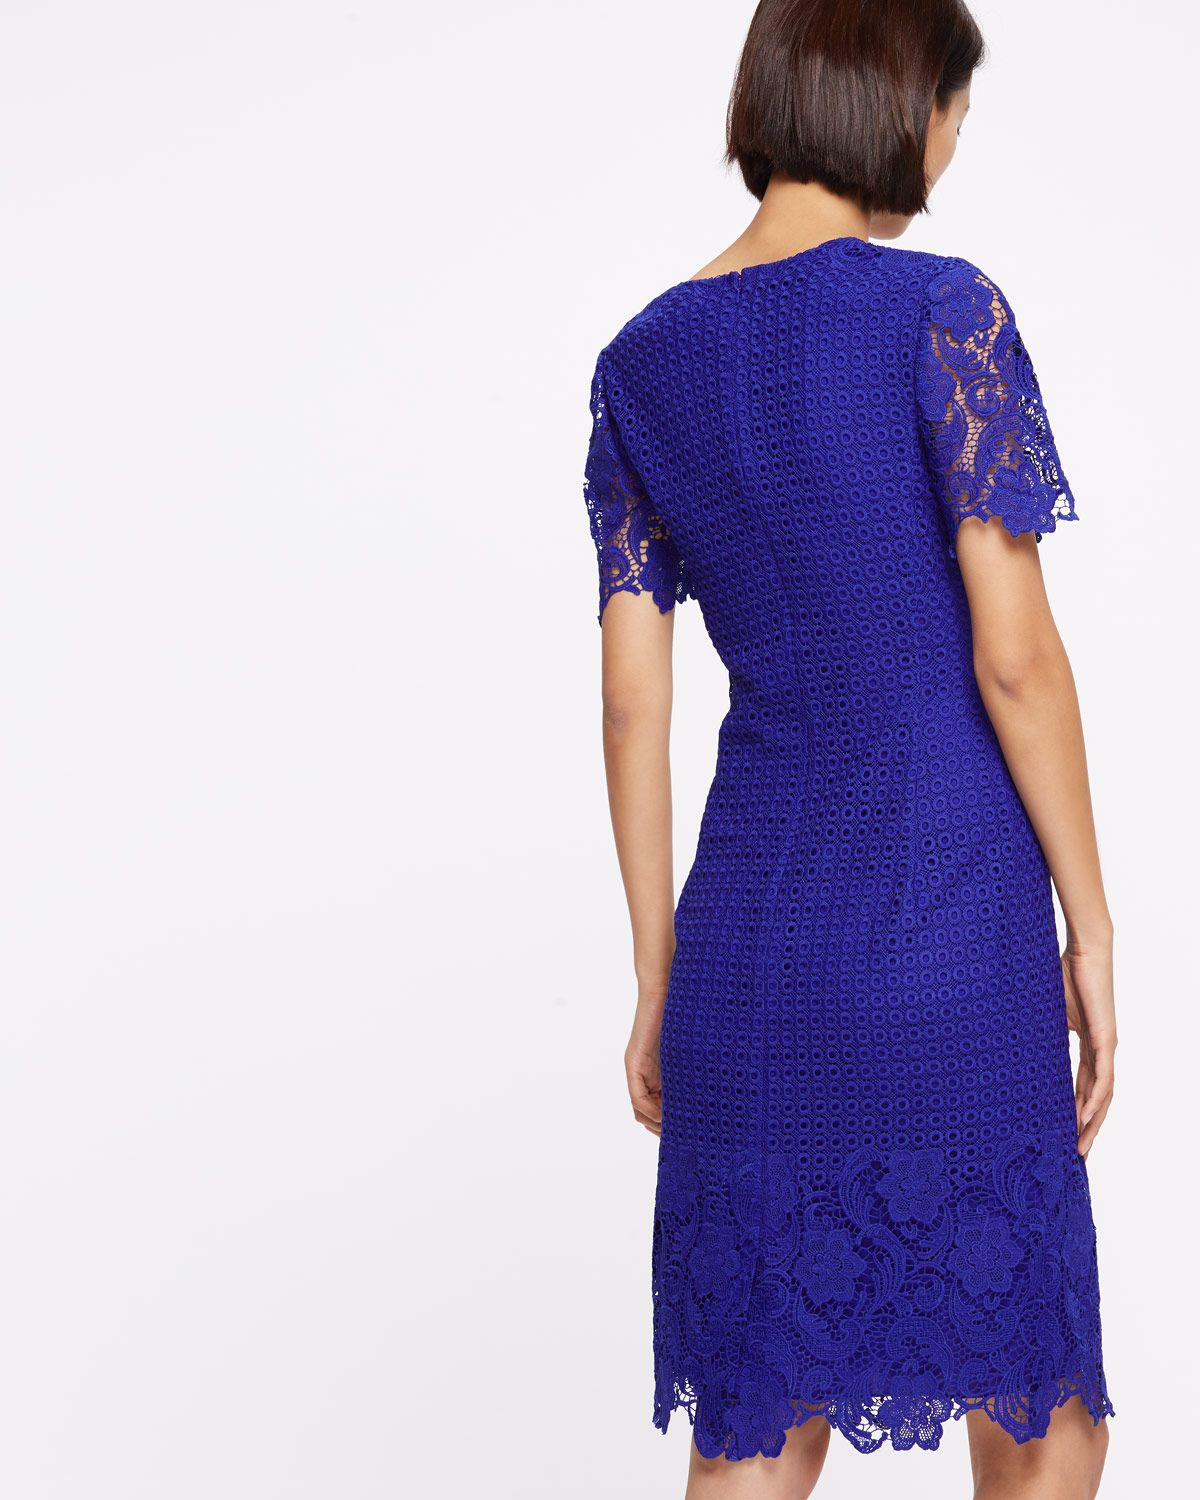 Engineered Lace Dress